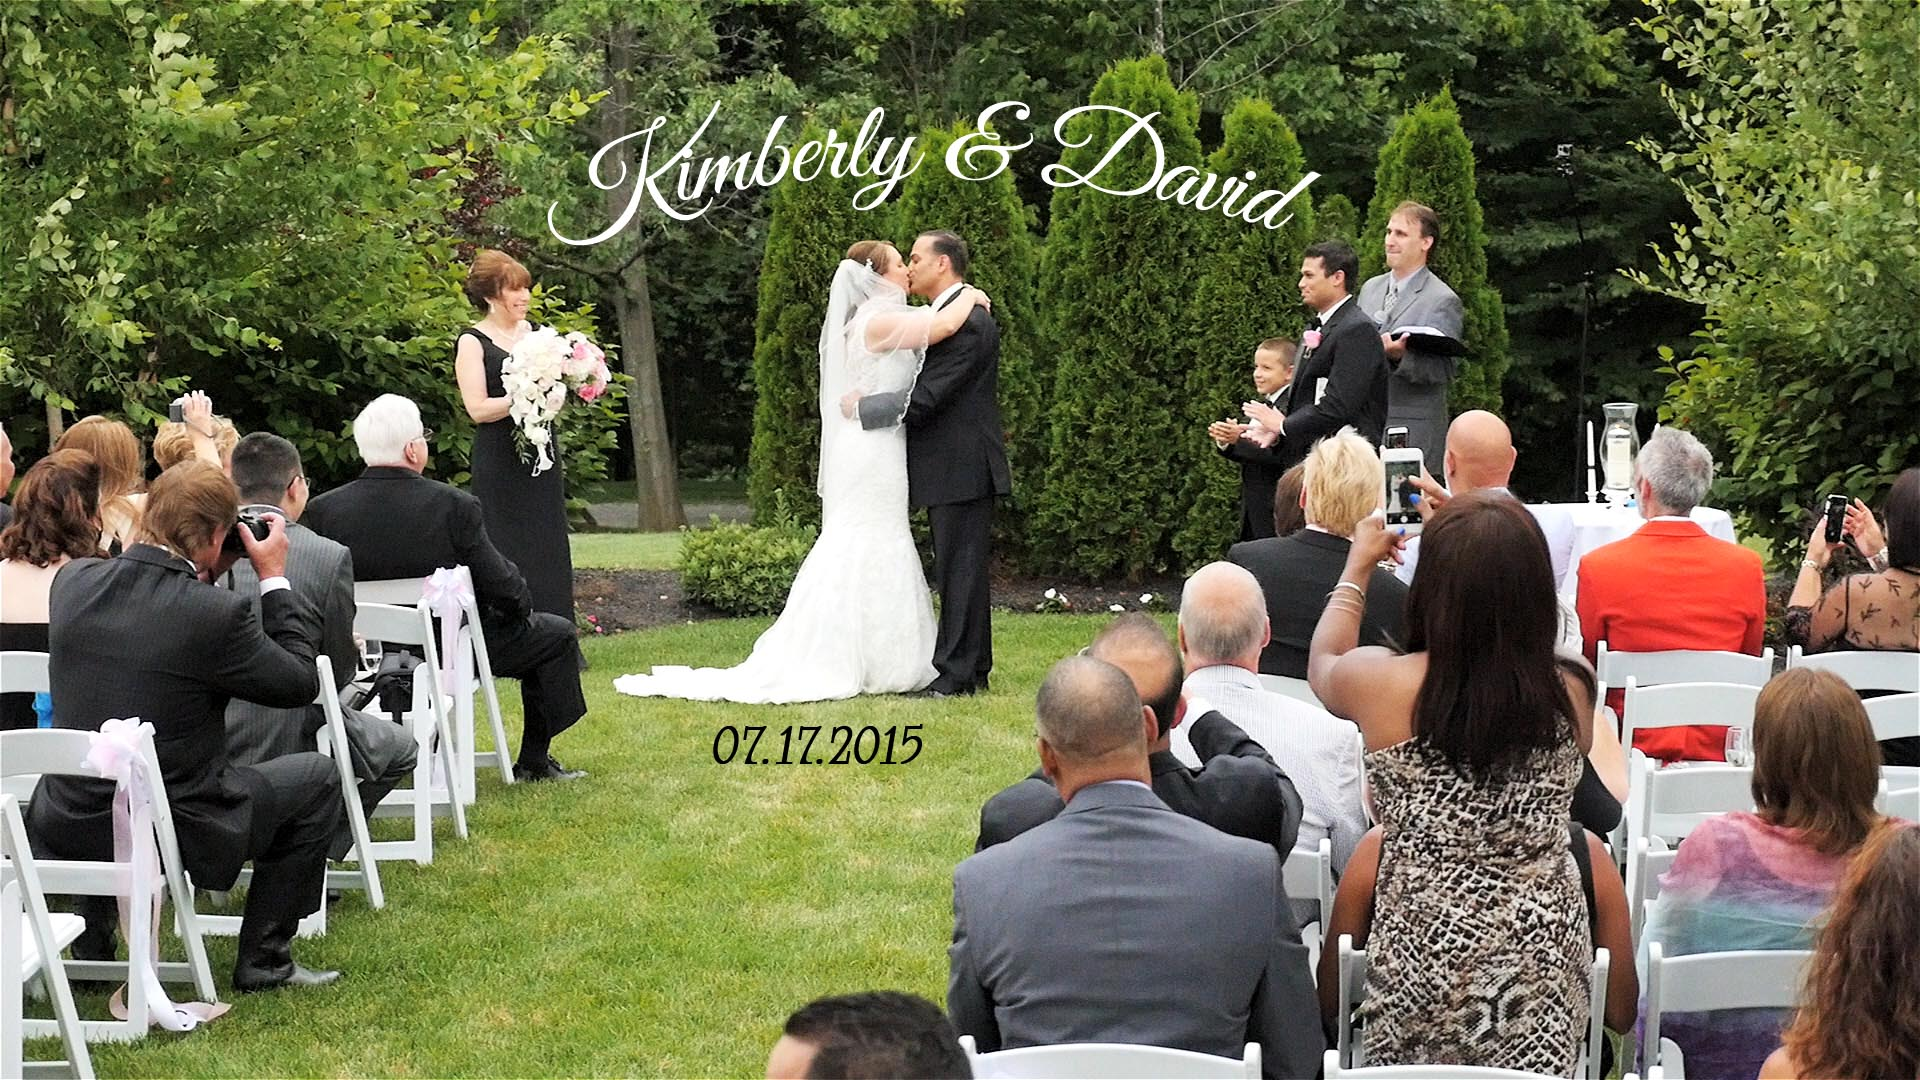 Kimberly & David – Avanti Mansion Buffalo